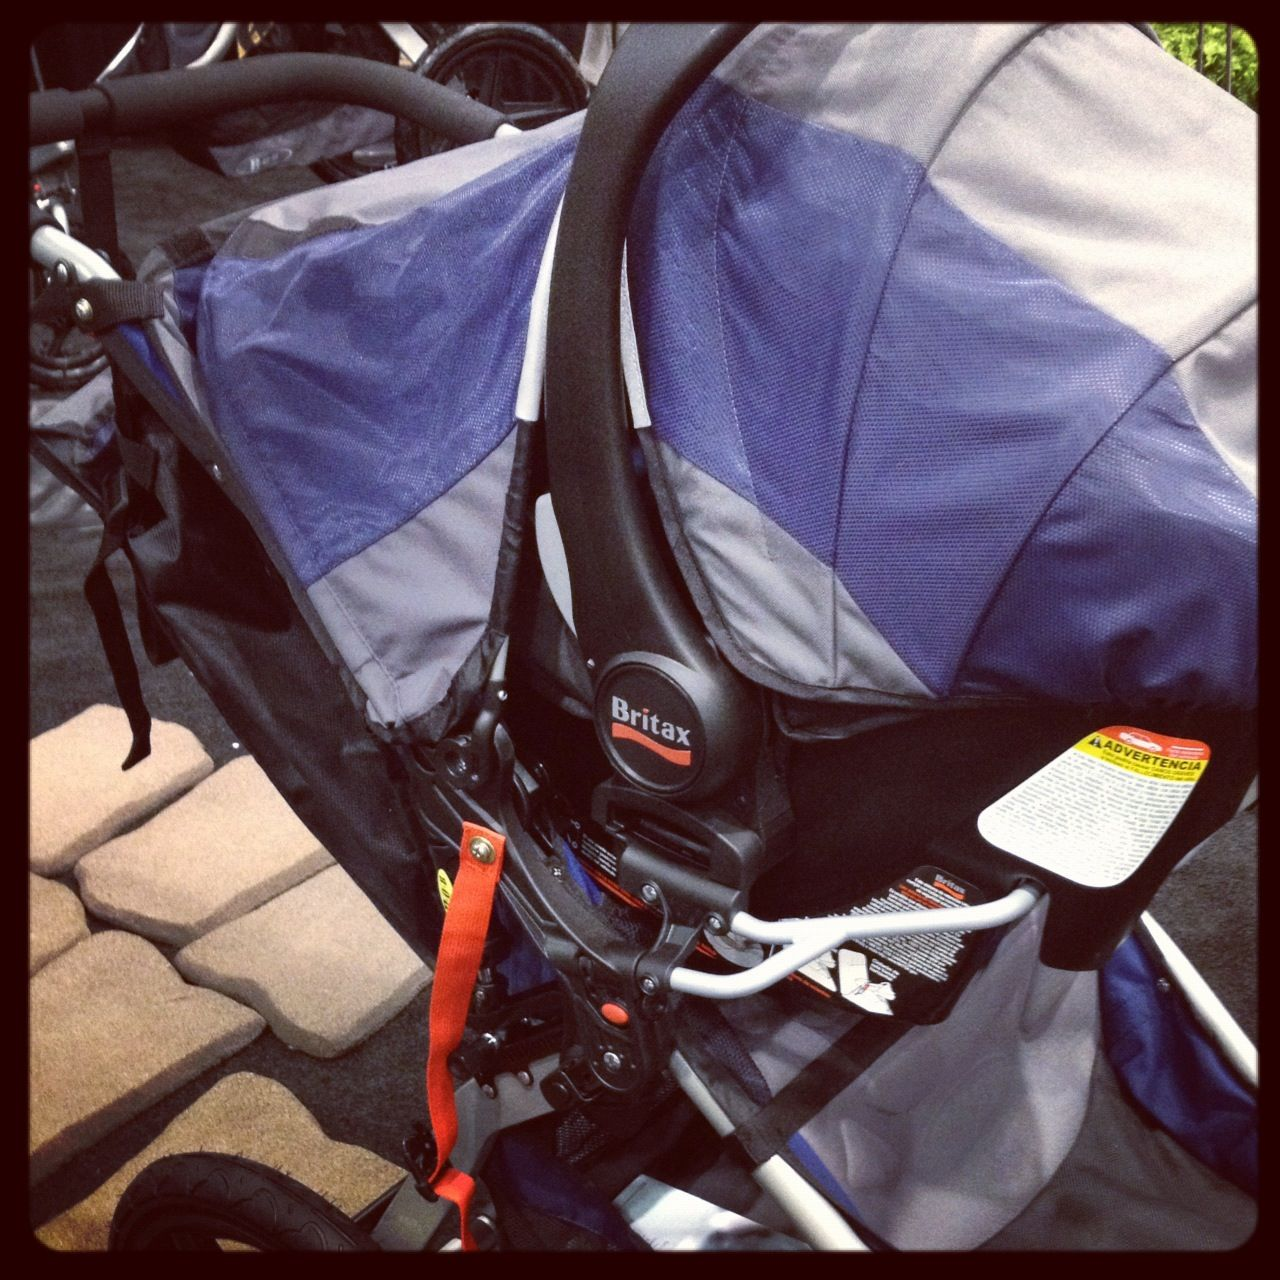 Britax's BSafe car seat is now compatible with BOB